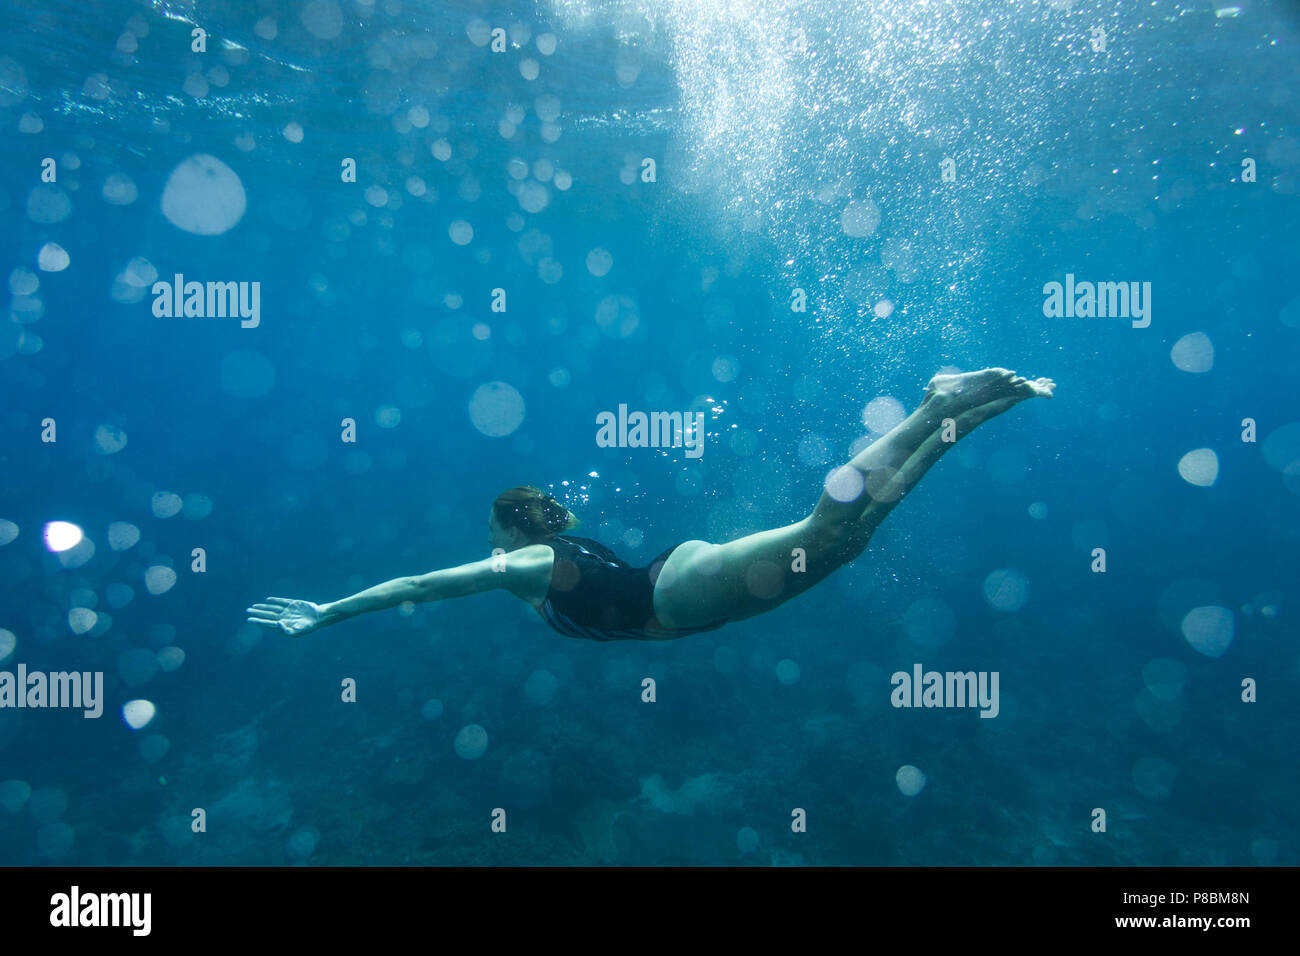 underwater photo of young woman in swimming suit diving in ocean alone Stock Photo